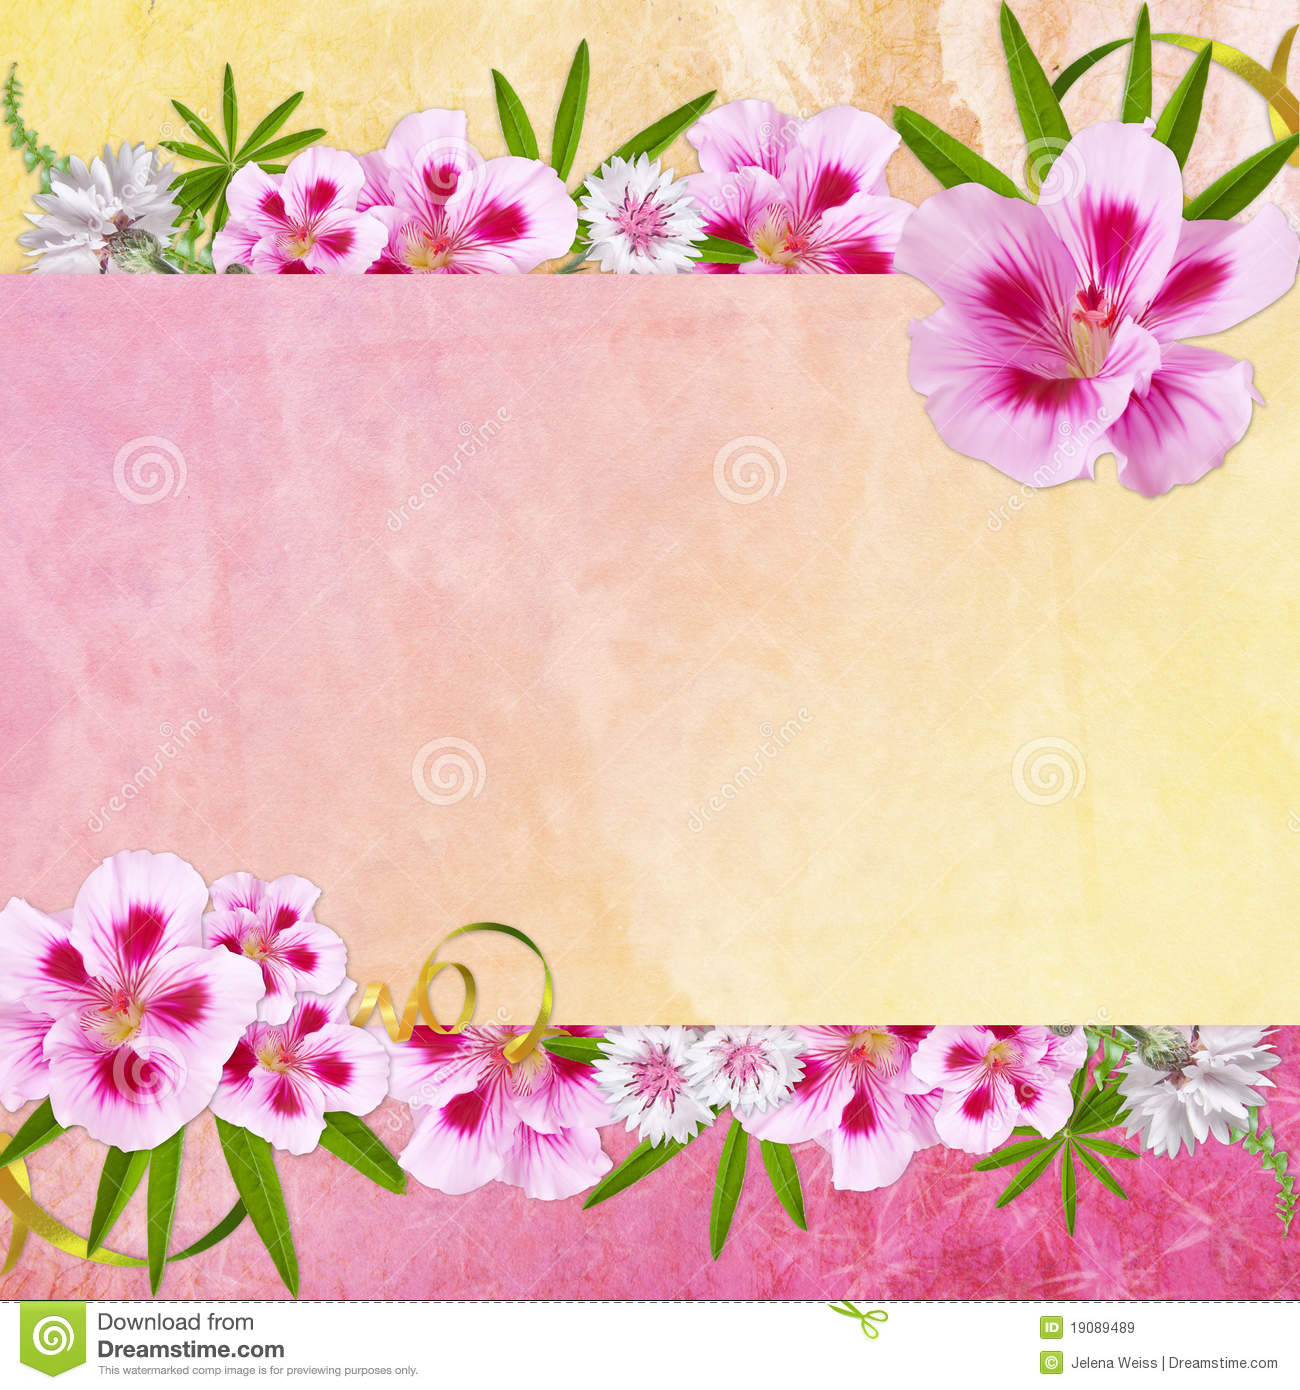 Background For Congratulation Card Royalty Free Stock ...